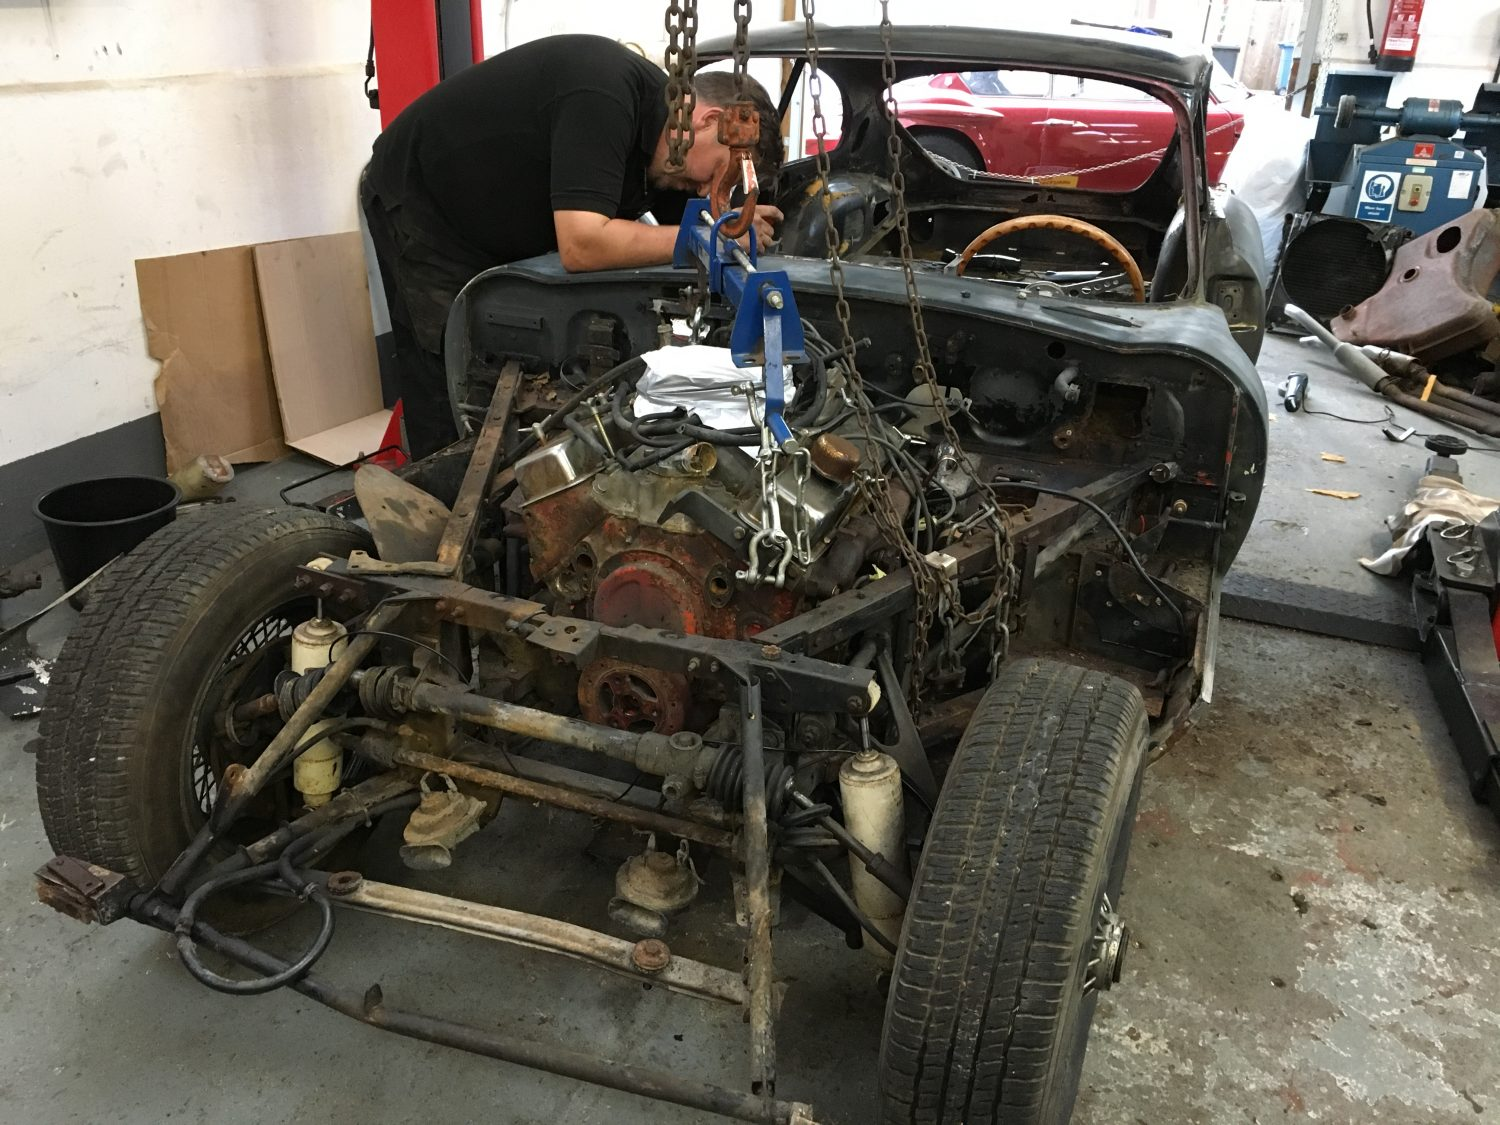 Mark and John started the E-Type engine